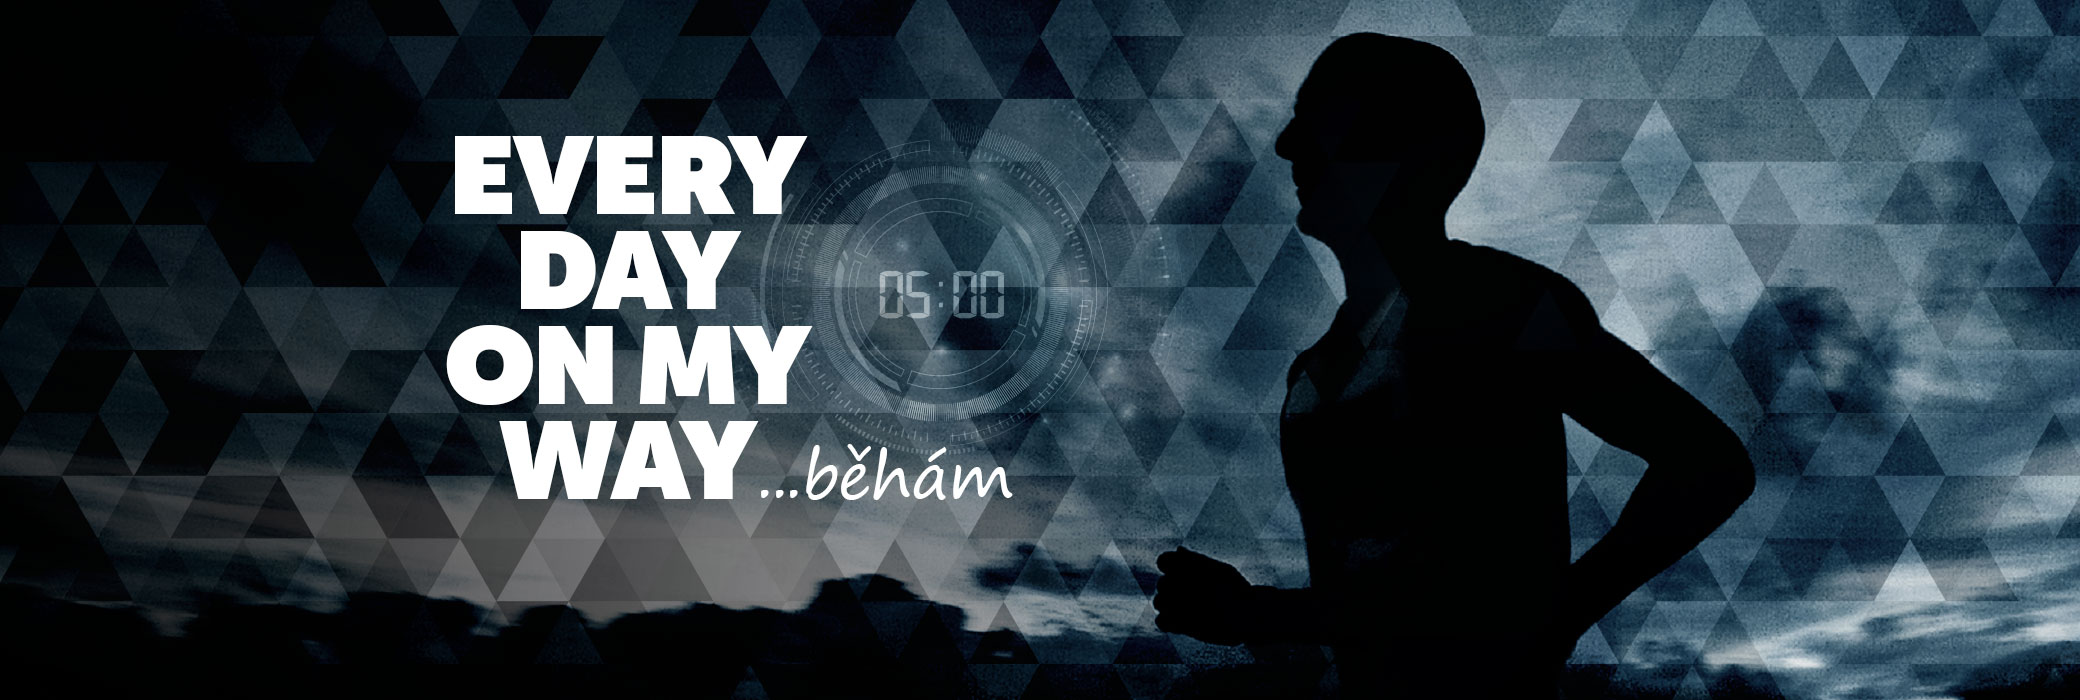 EVERY DAY ON MY WAY - běhám